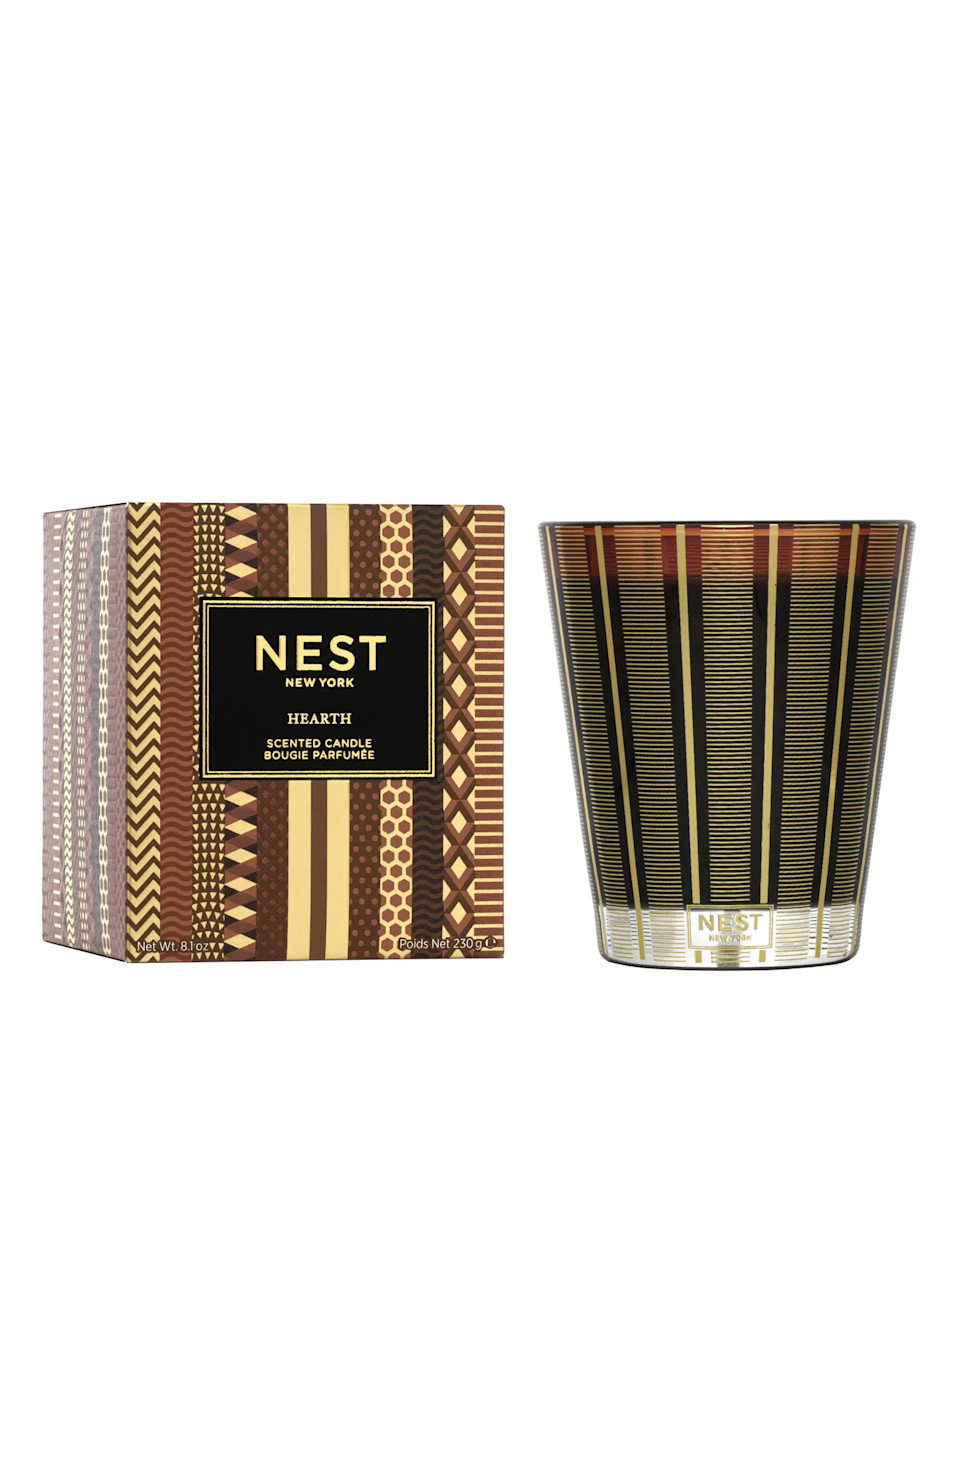 """<h3>Nest Fragrances Hearth Candle</h3><br>This festive votive said to contain """"the aroma of a wintertime fire"""" is infused with rich oud wood with frankincense and hints of smoky embers. <br><br><strong>NEST New York</strong> Hearth Scented Candle, $, available at <a href=""""https://go.skimresources.com/?id=30283X879131&url=https%3A%2F%2Fwww.nordstrom.com%2Fs%2Fnest-new-york-hearth-scented-candle-limited-edition%2F5731674"""" rel=""""nofollow noopener"""" target=""""_blank"""" data-ylk=""""slk:Nordstrom"""" class=""""link rapid-noclick-resp"""">Nordstrom</a>"""